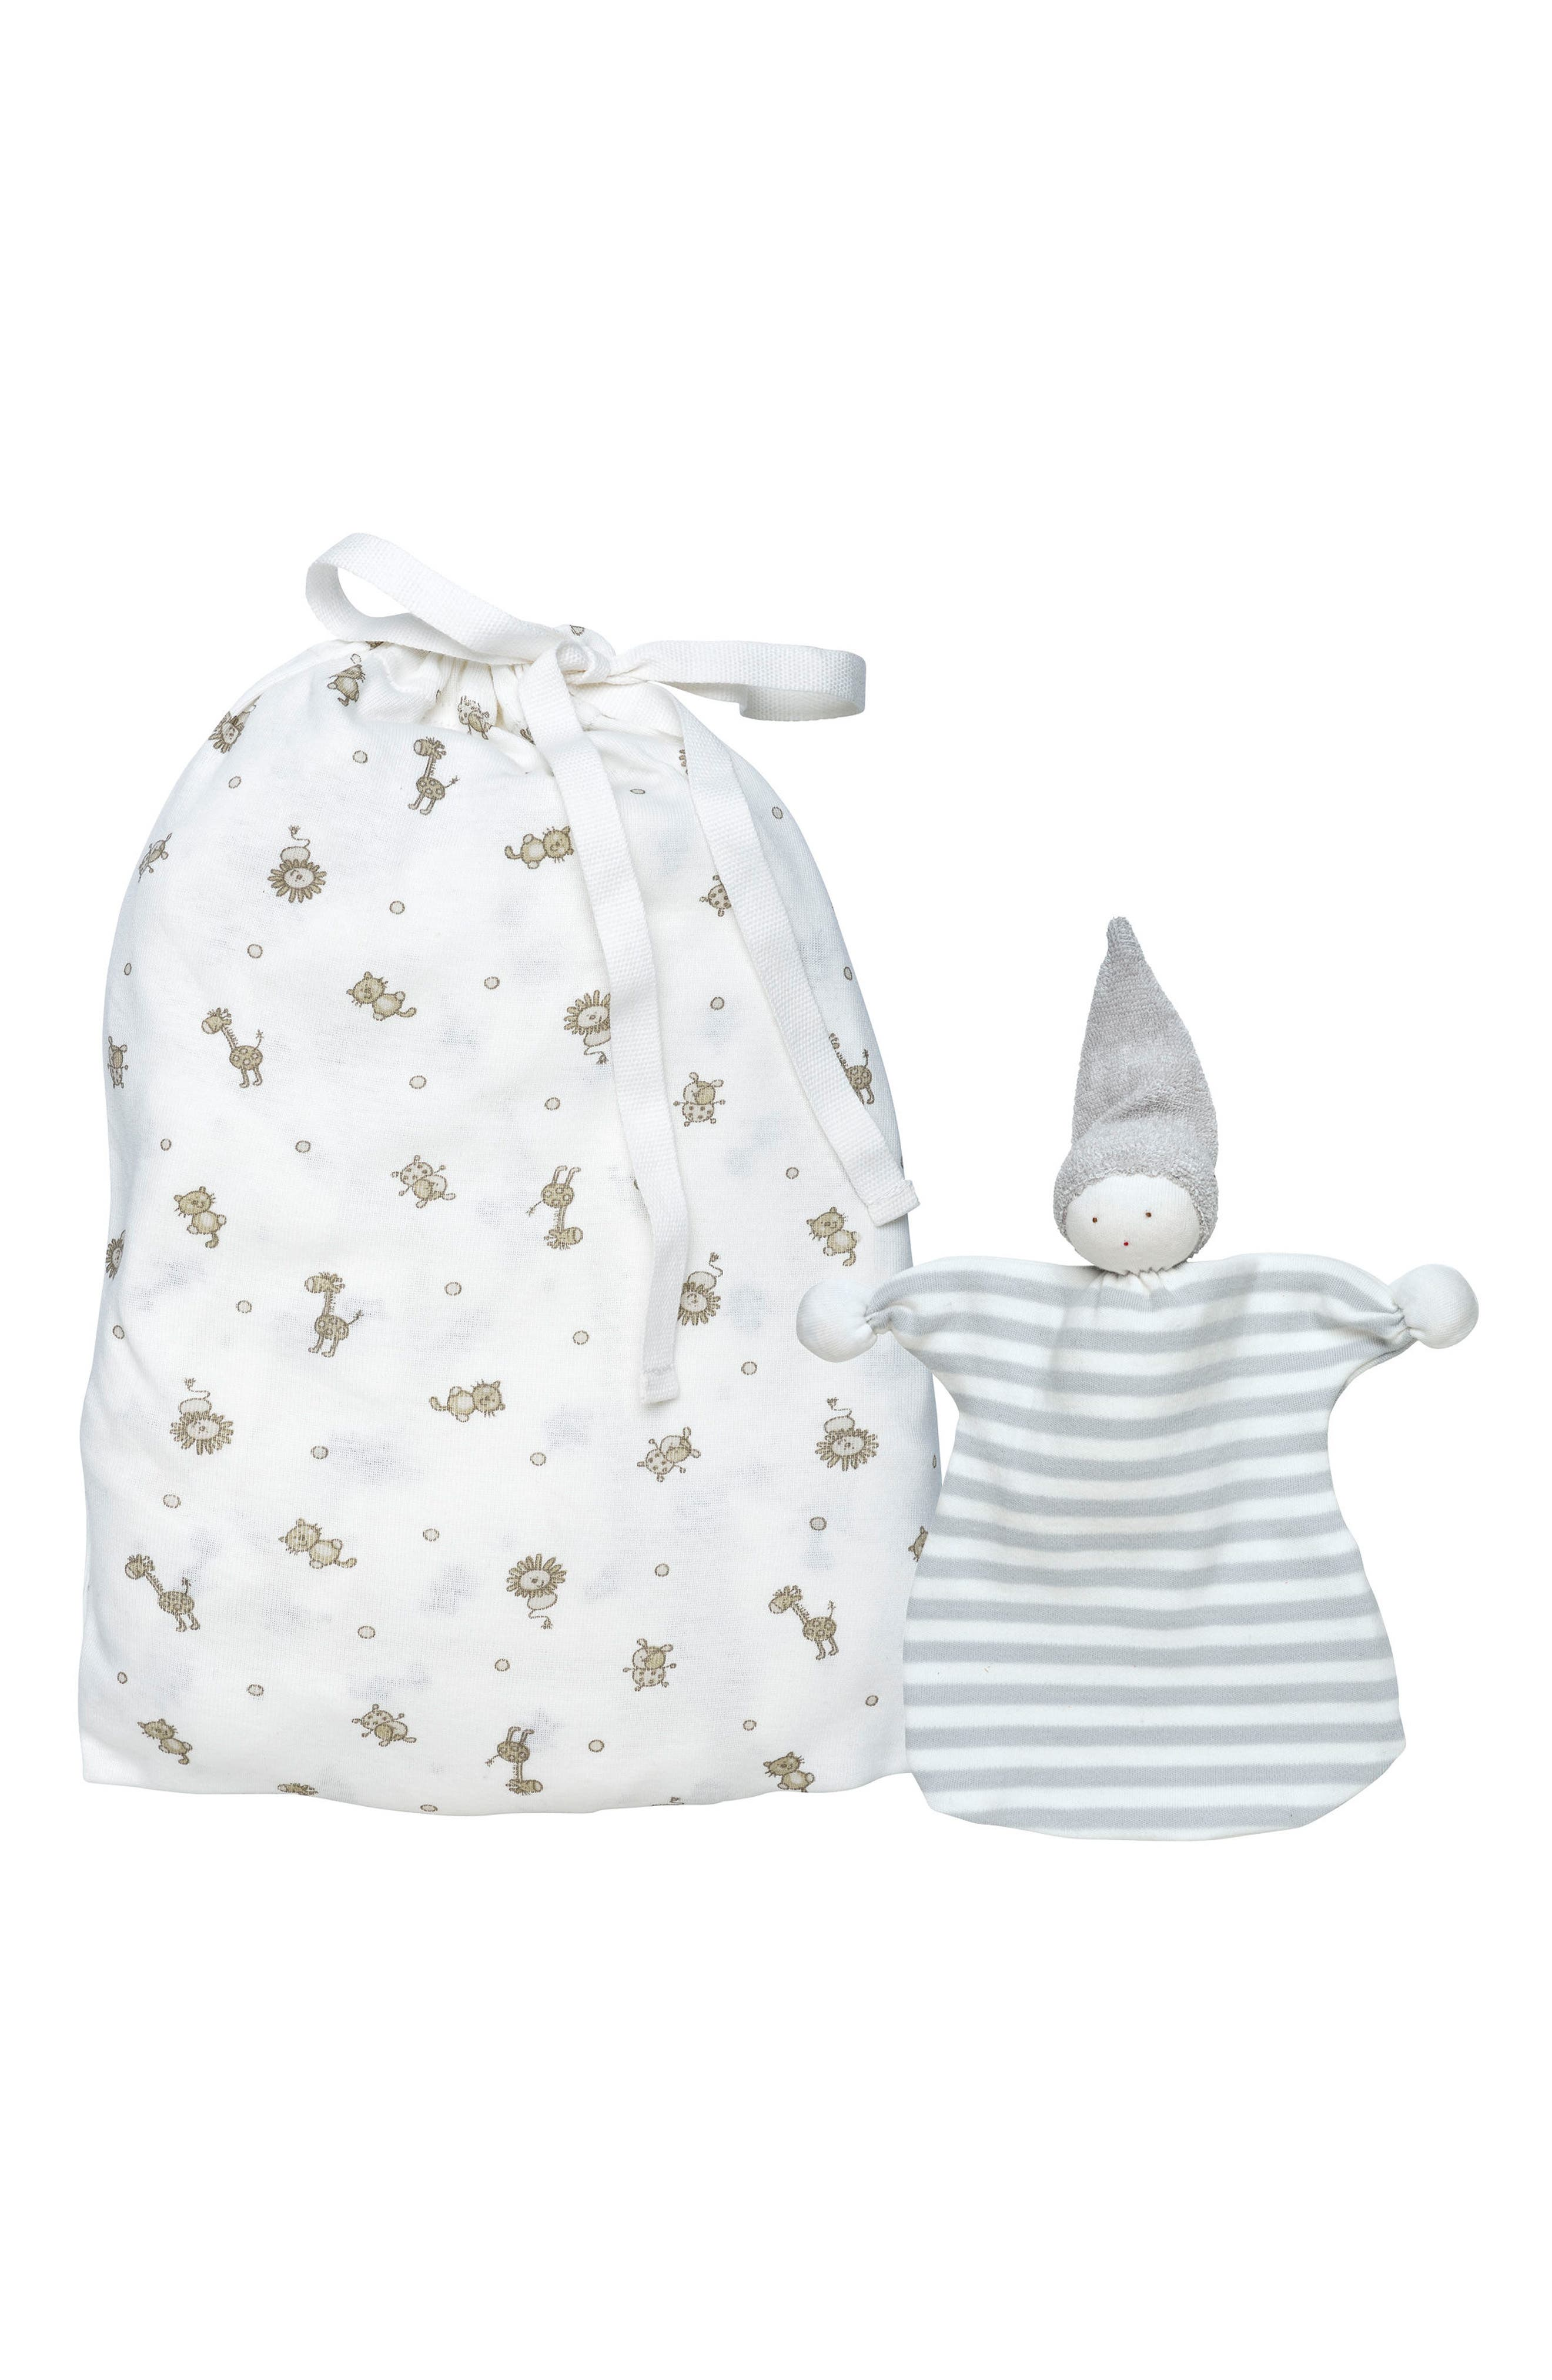 2-Piece Safari Print Fitted Crib Sheet & Stuffed Elephant Toy Set,                         Main,                         color, White